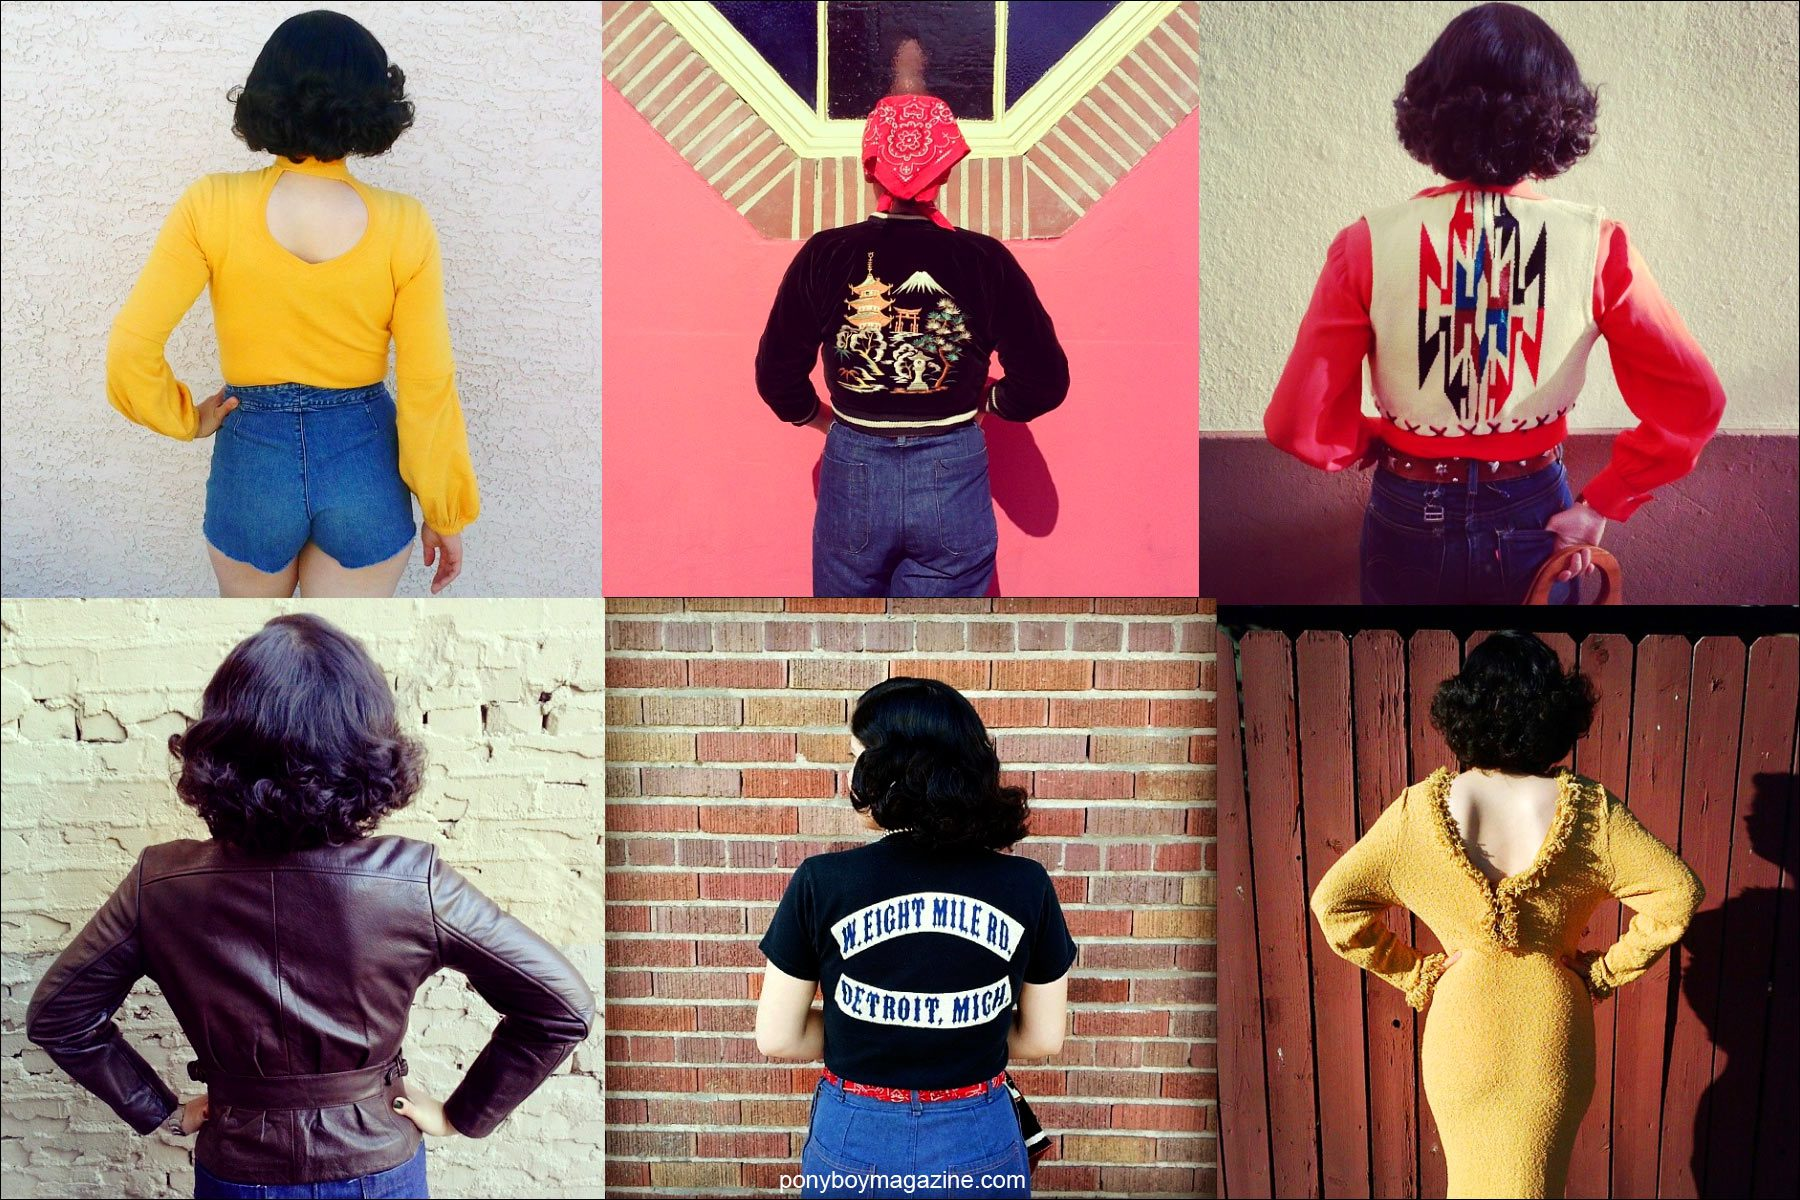 Backside images of women's vintage clothing on Crystal Landeros from Santa Muerte Trading Co. Ponyboy magazine NY.